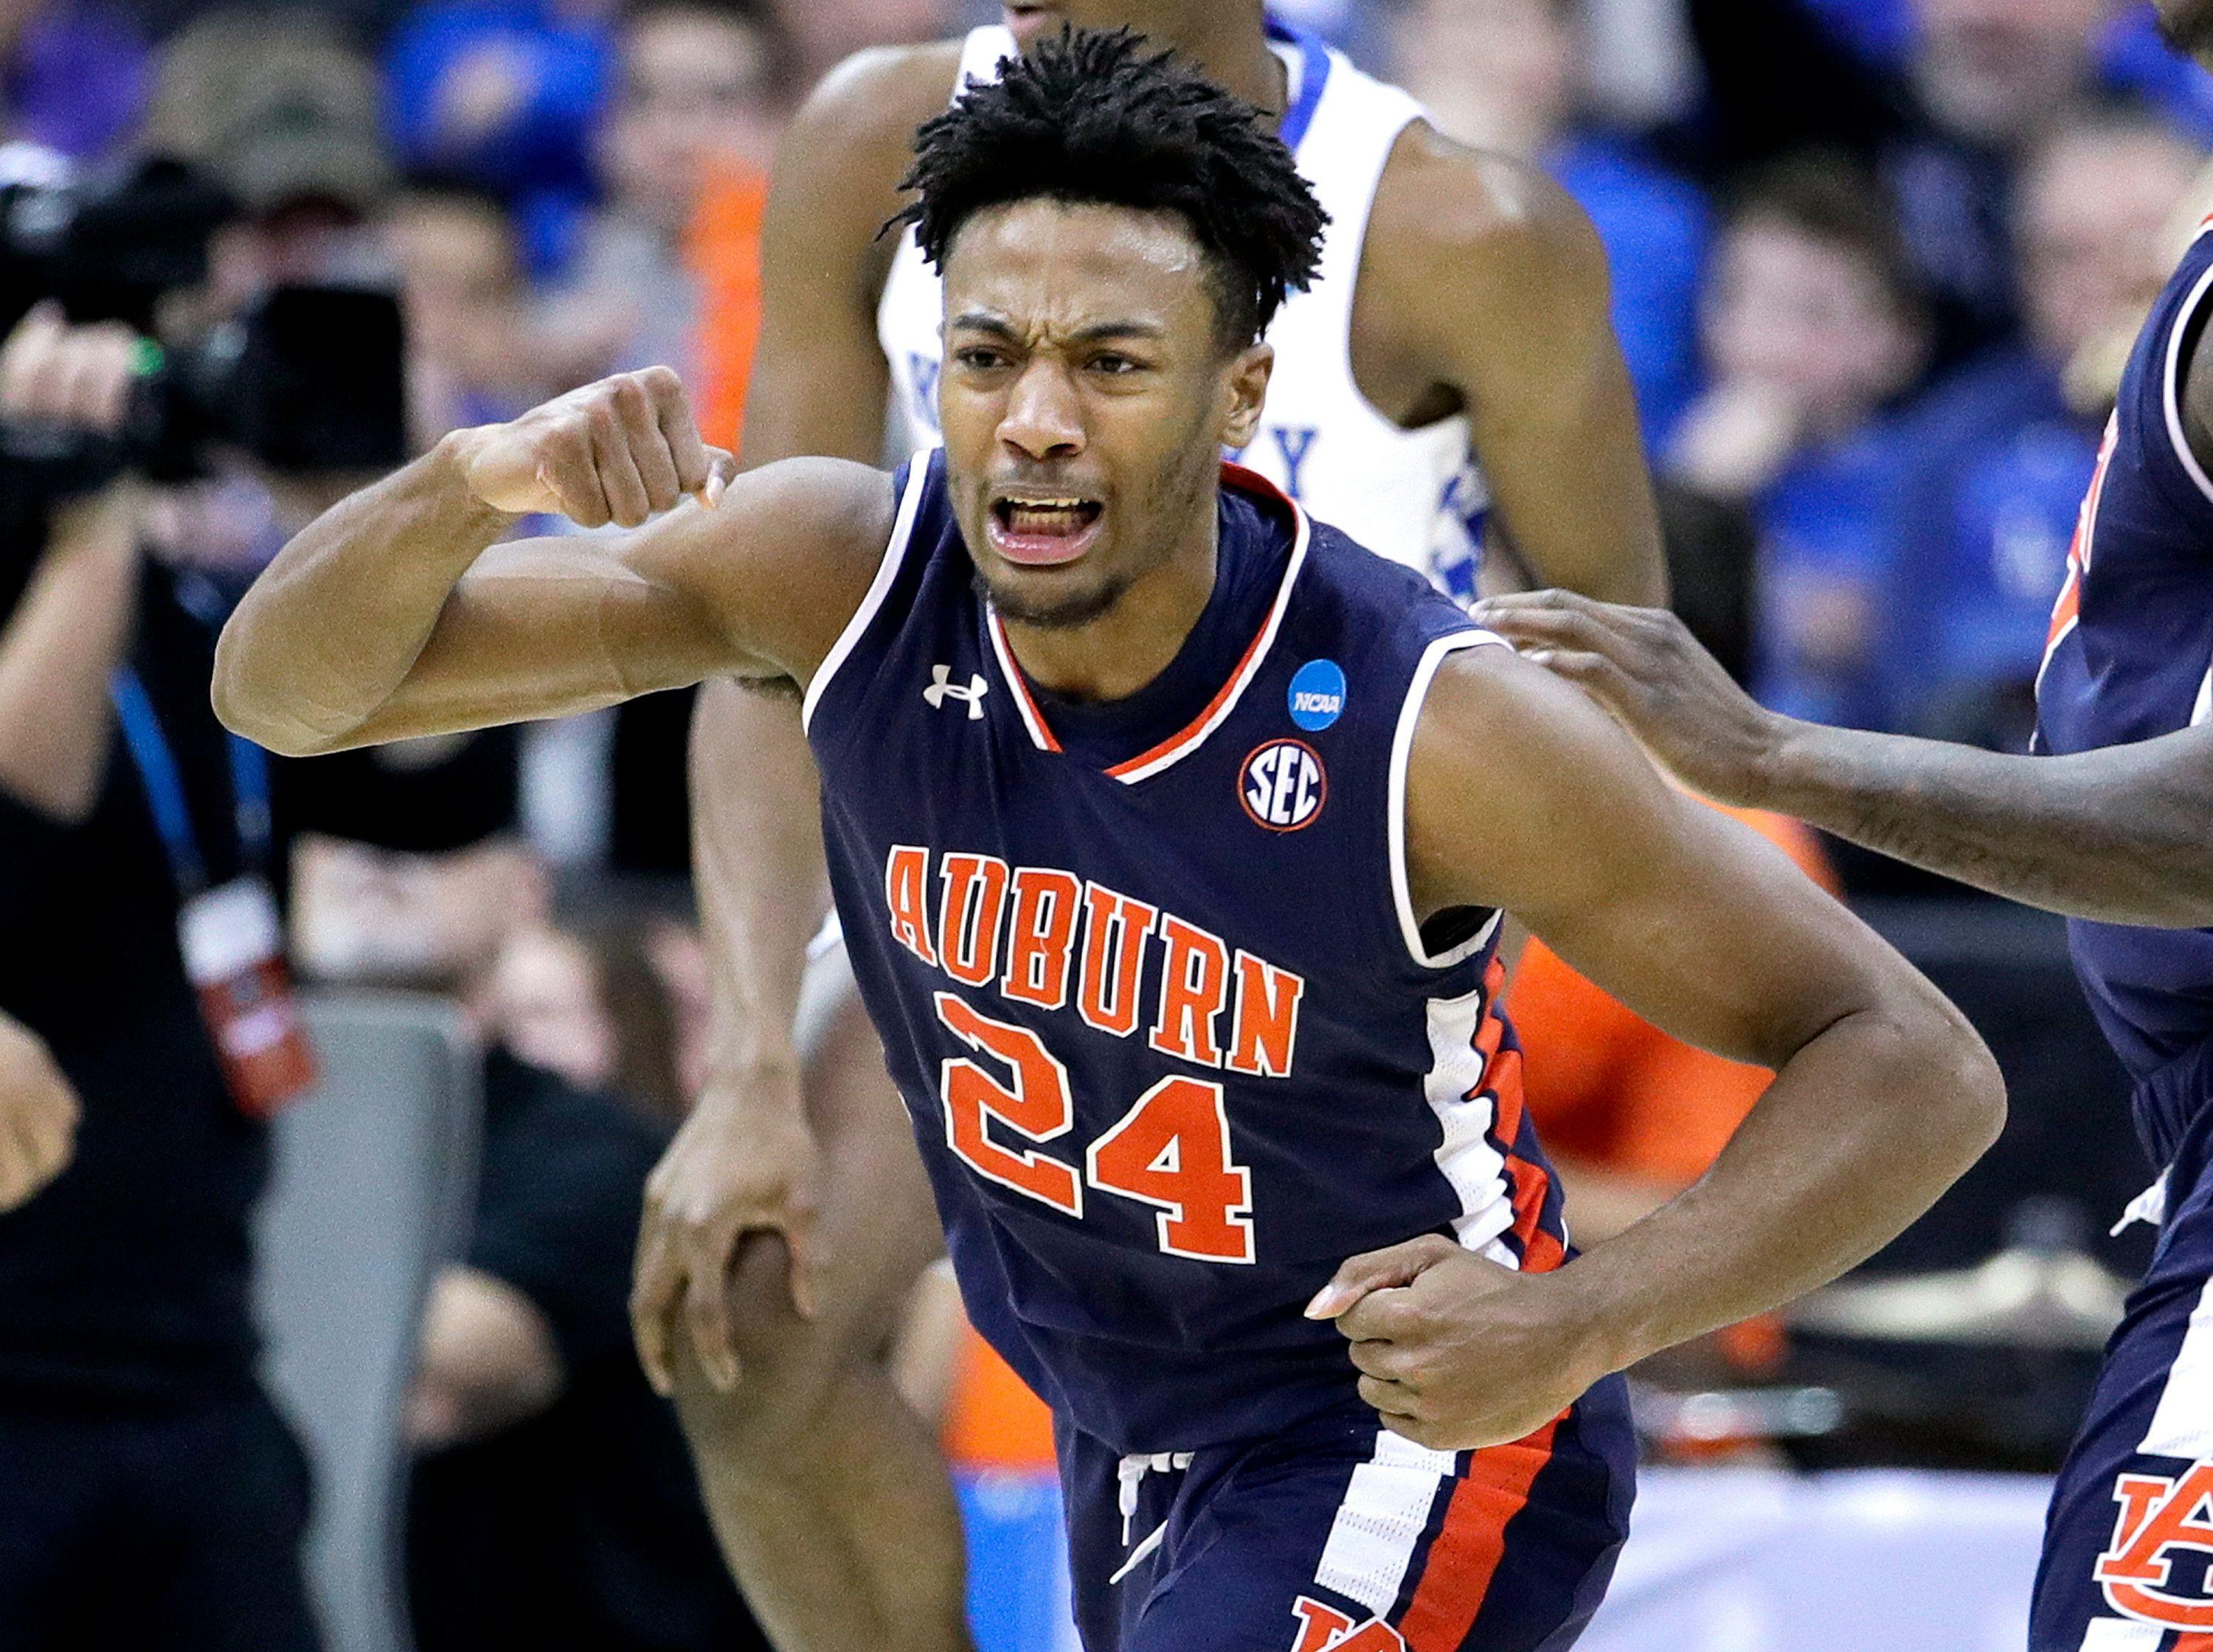 Shorthanded Auburn Stuns Again Topples Kentucky To Advance